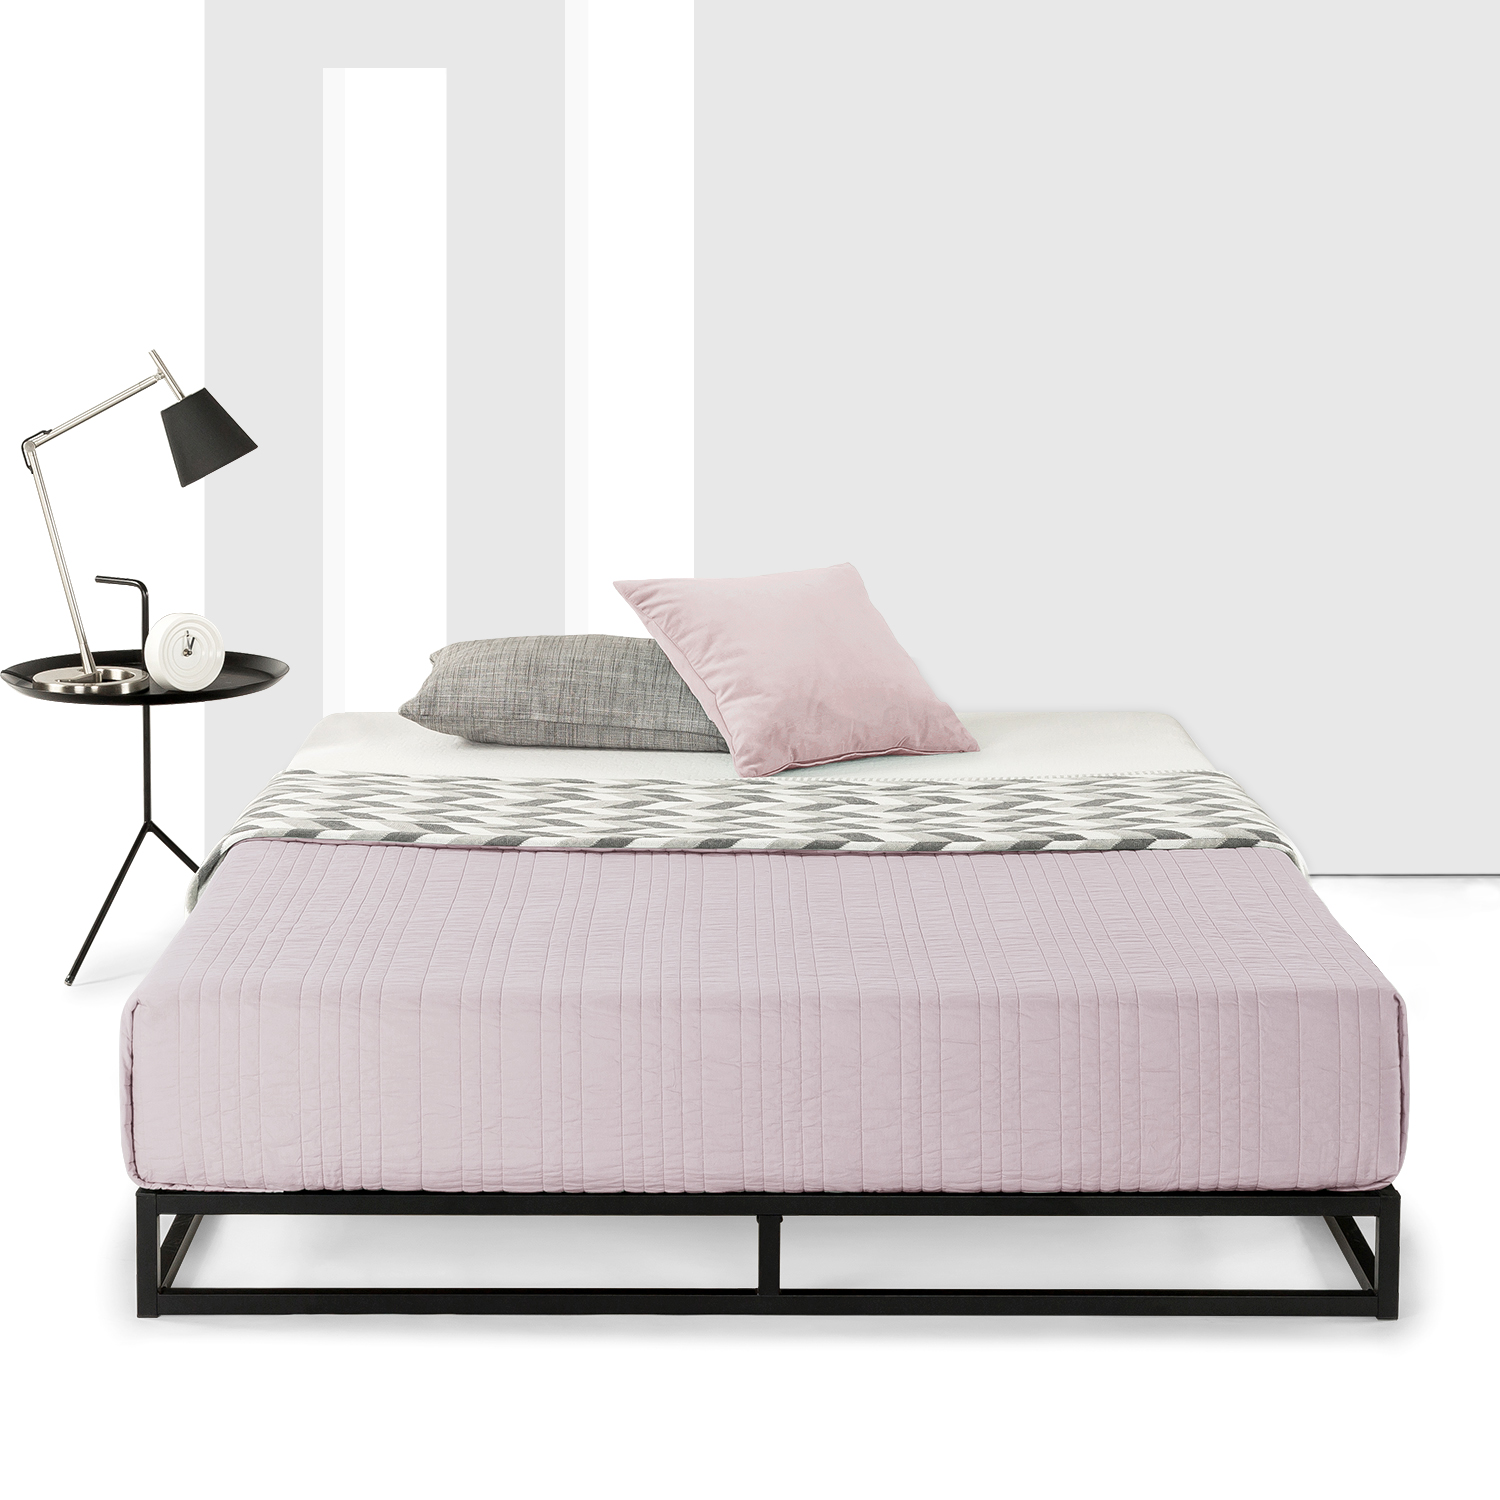 Best Price Mattress 6 Inch Platform Metal Bed Frame with Classic Wooden Slat Support